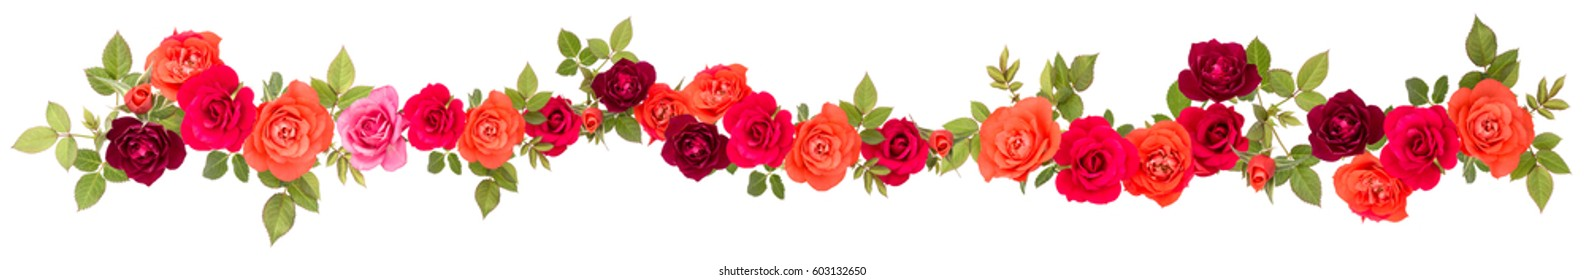 colorful rose flower bouquet border isolated on white background cutout